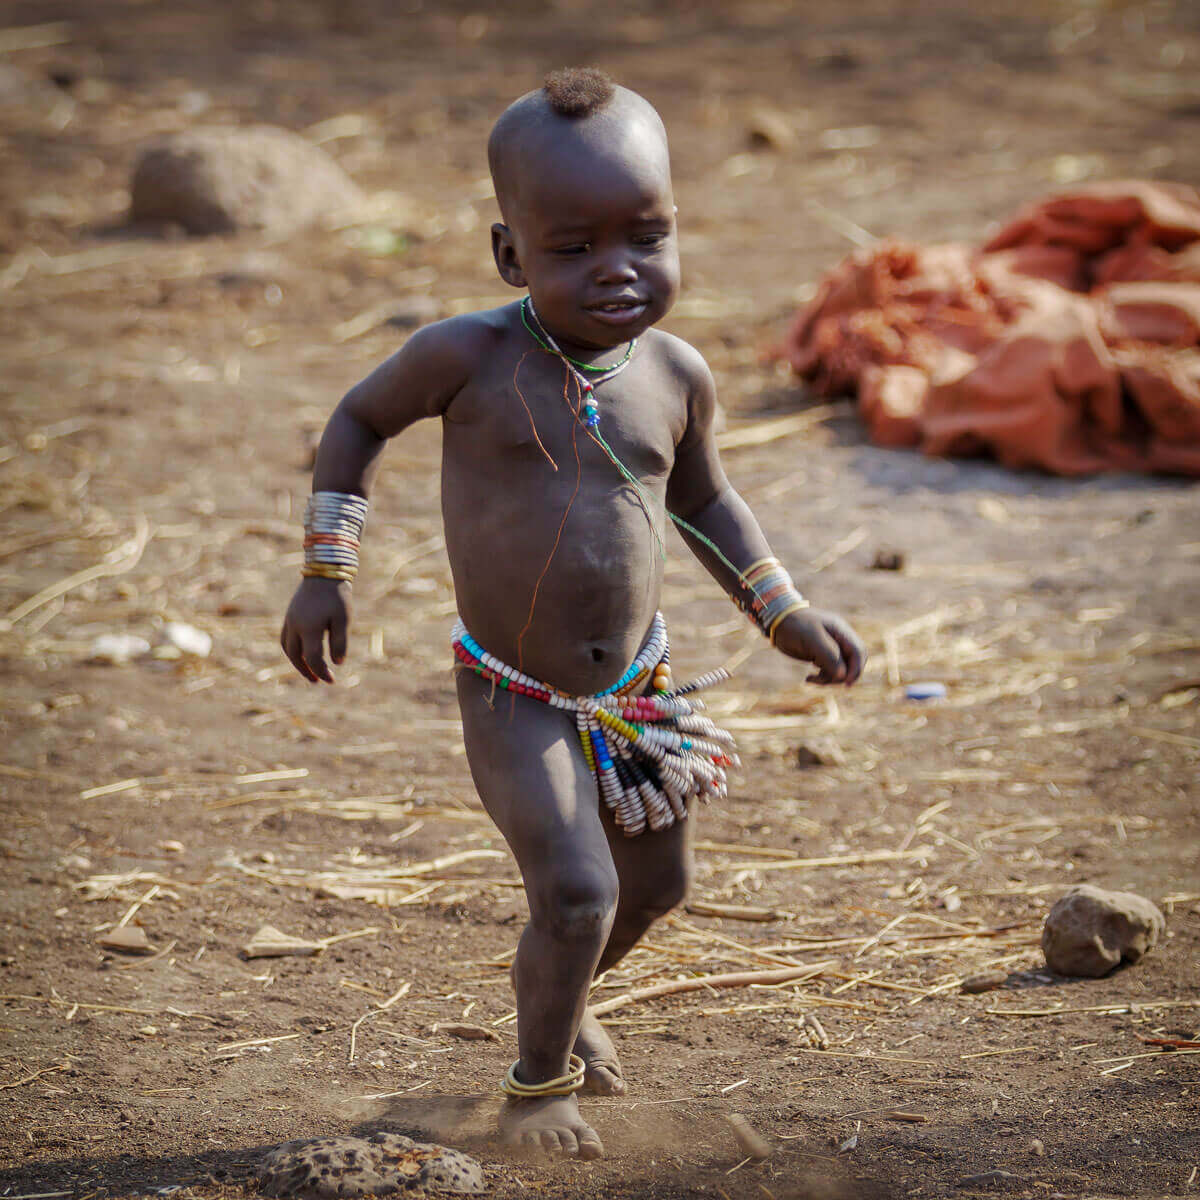 Ethiopia_Mursi_tribe_kids_baby_playing_village_Surma_Jinka_Africa_country_traveling_family_adventuresinethiopia